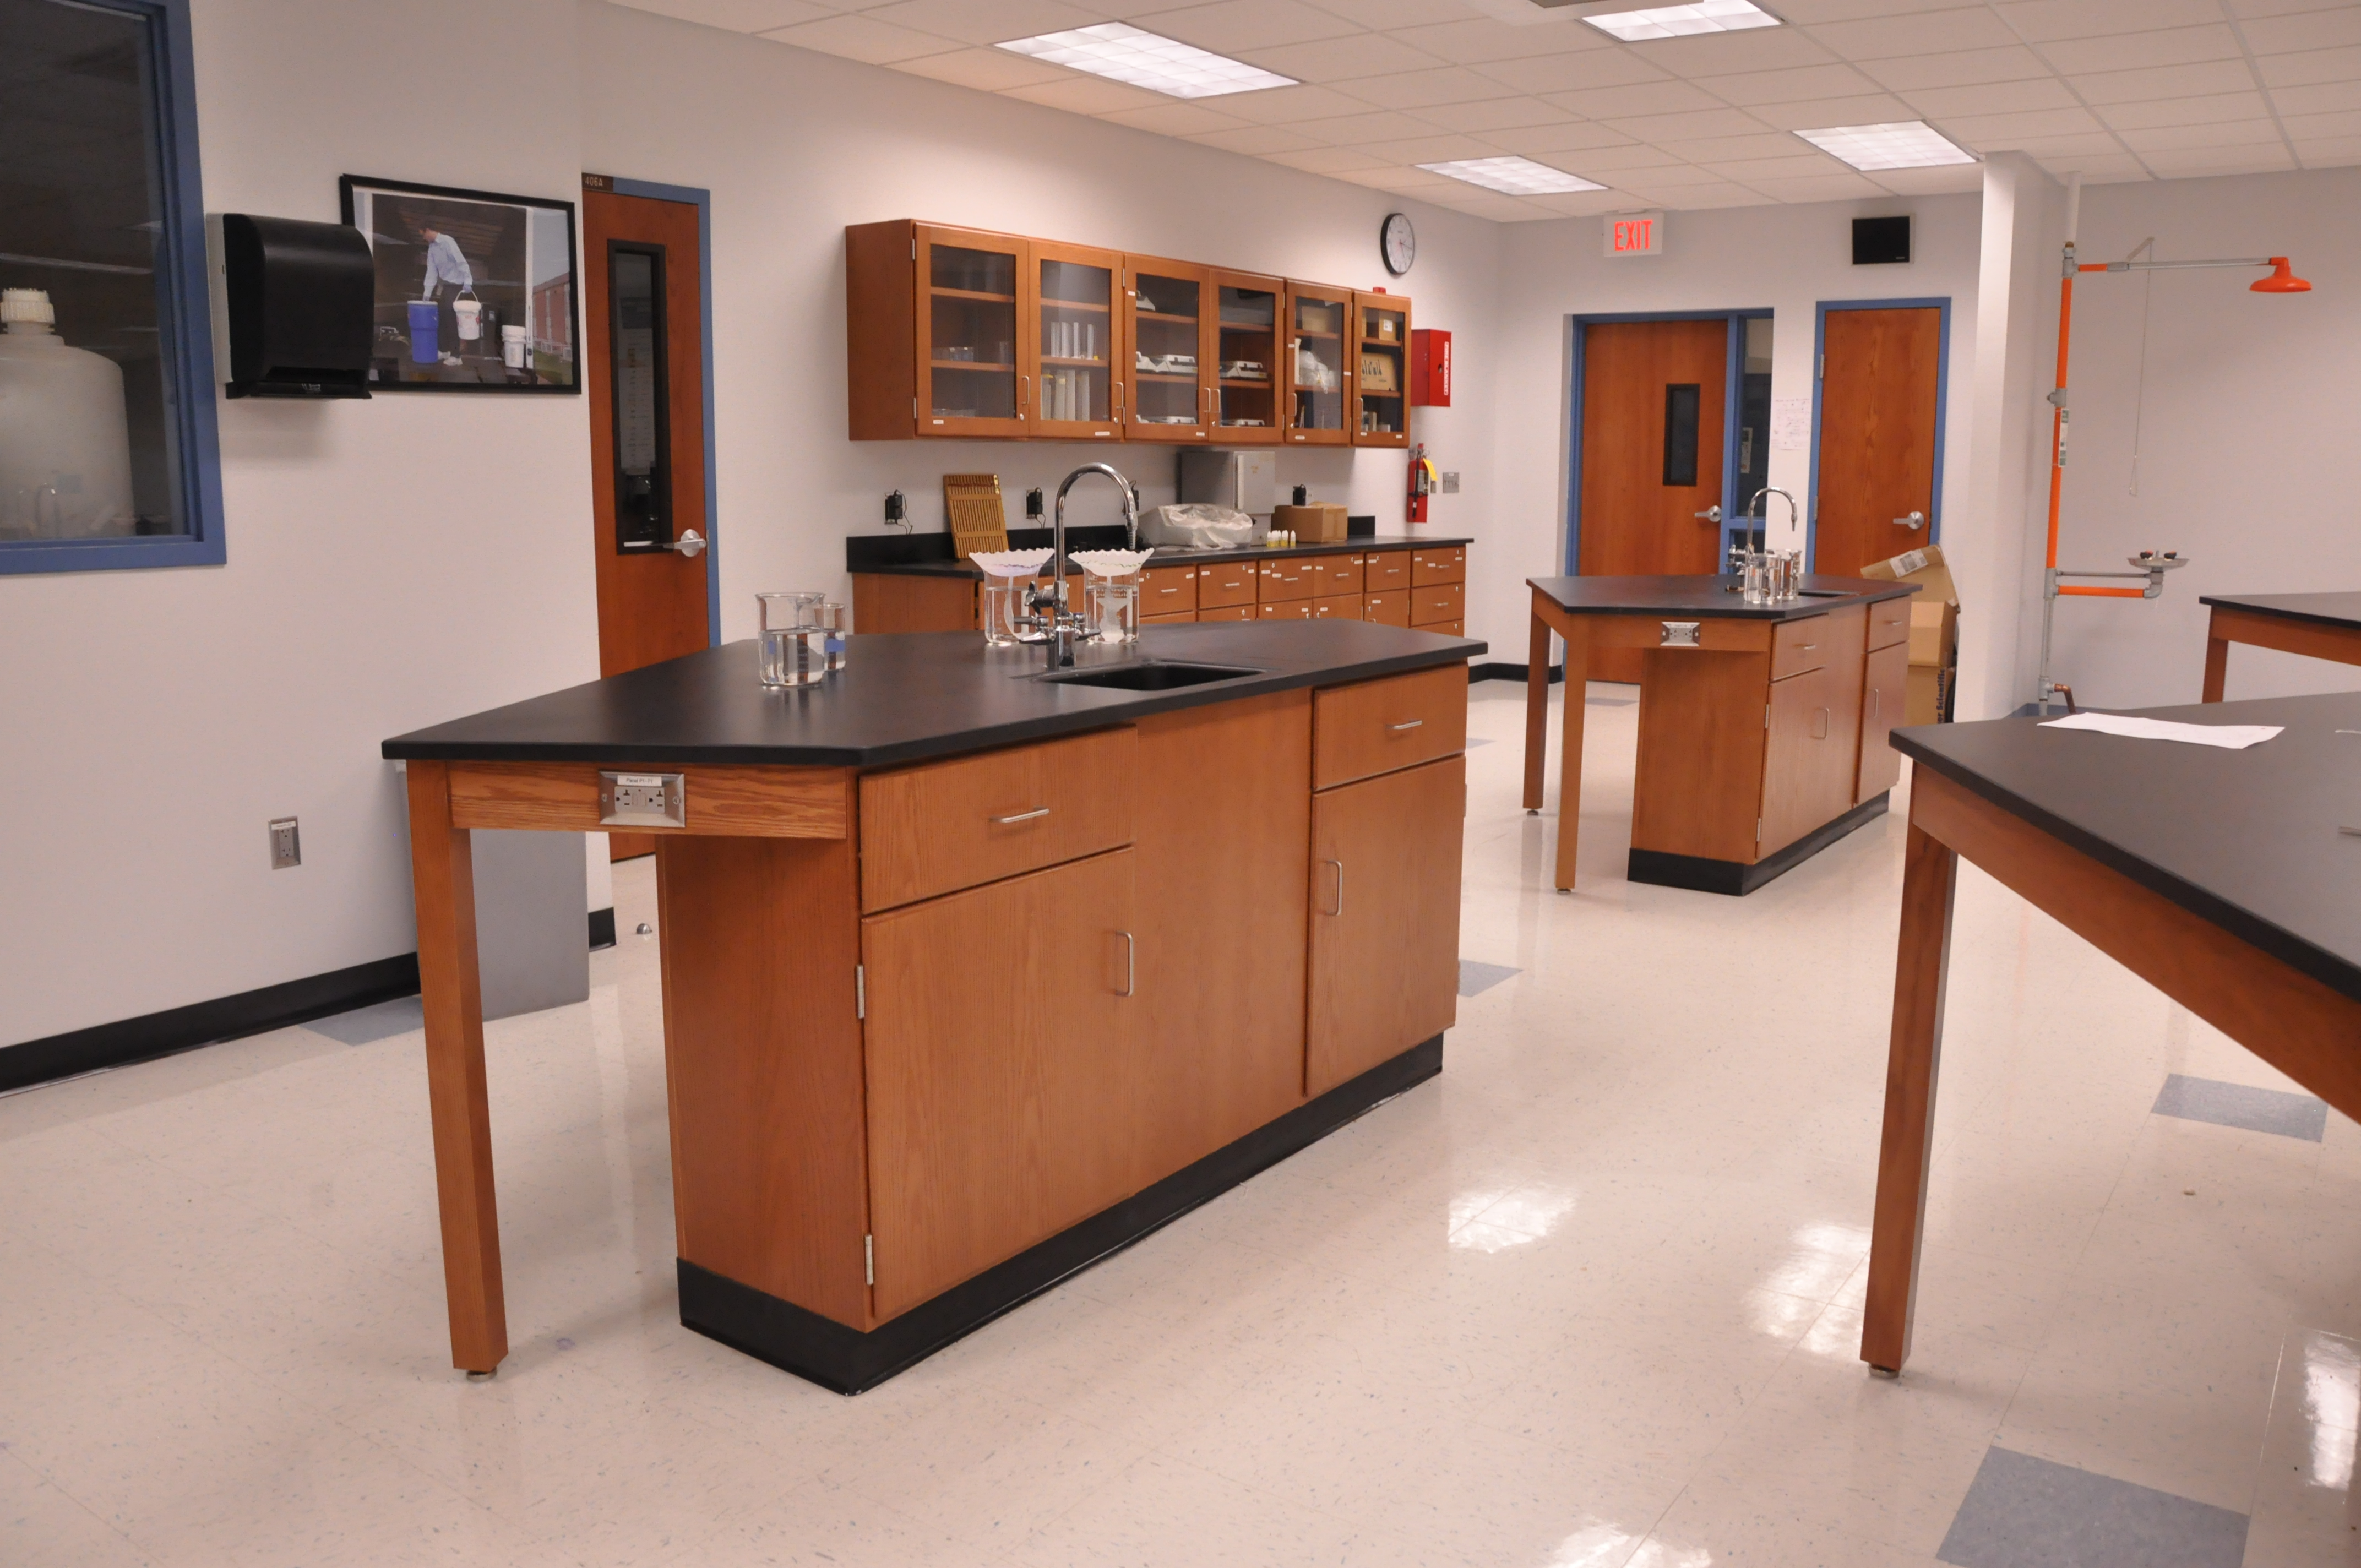 Grandview Science Classrooms